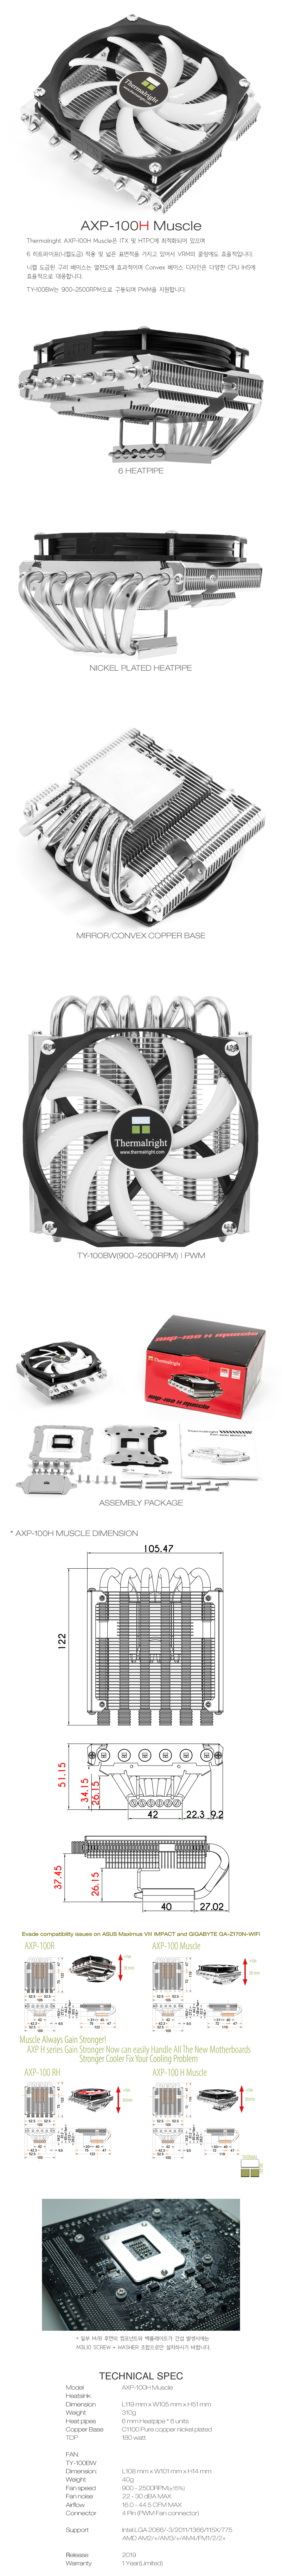 Thermalright  AXP-100H Muscle